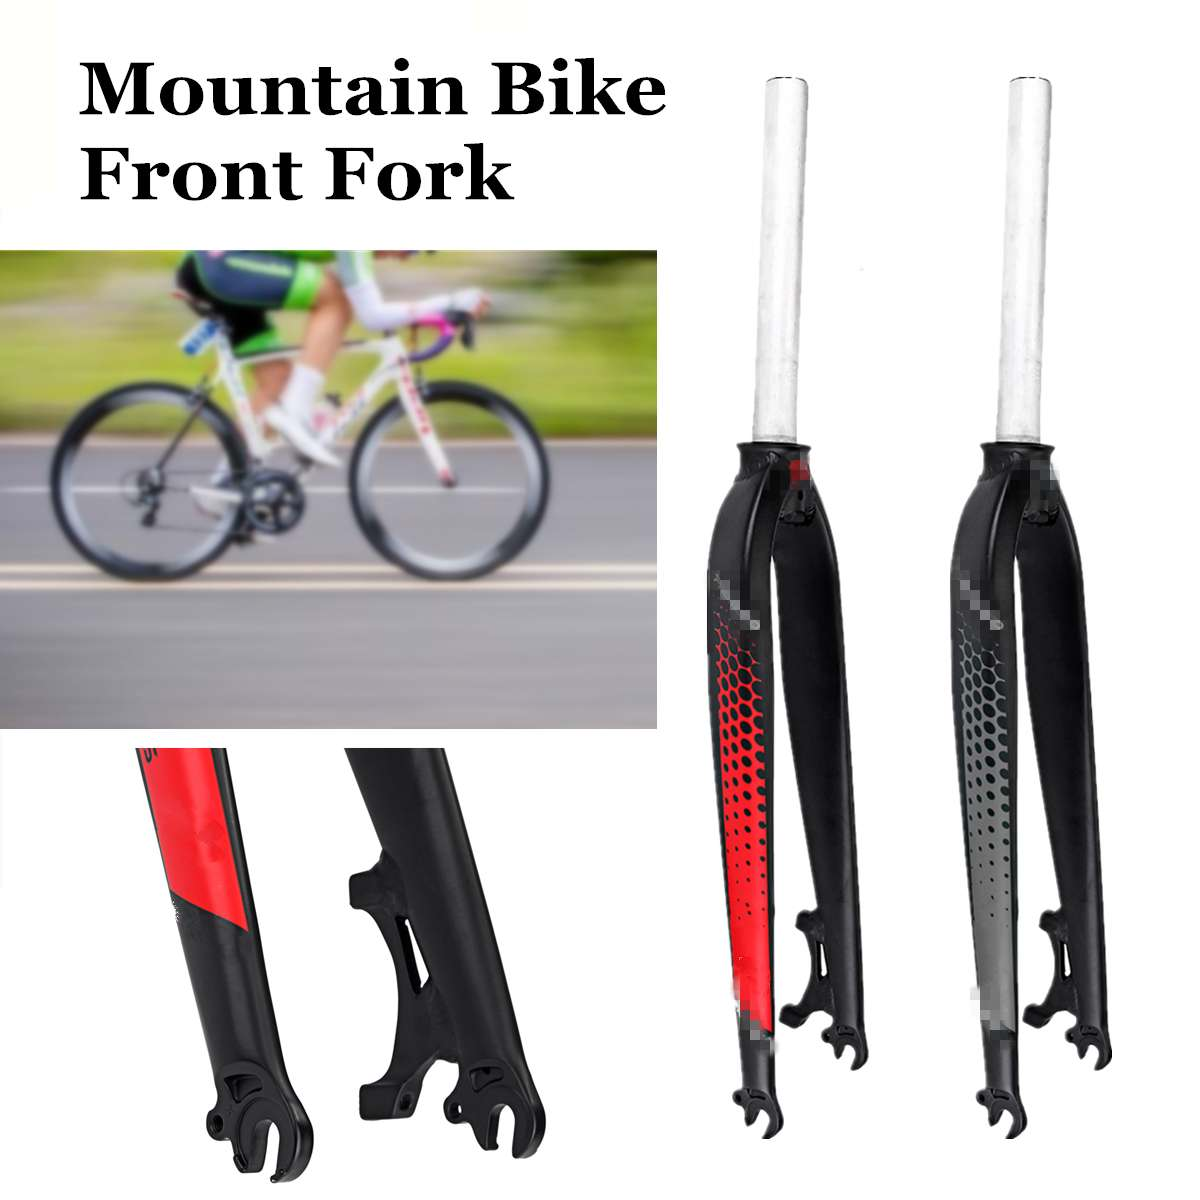 26 inch 29er Aluminum Alloy Bicycle Fork MTB Mountain Bike Cycling Bicycle Brake Disc Front Fork Bicycle Part Gray/Red 2019 New26 inch 29er Aluminum Alloy Bicycle Fork MTB Mountain Bike Cycling Bicycle Brake Disc Front Fork Bicycle Part Gray/Red 2019 New